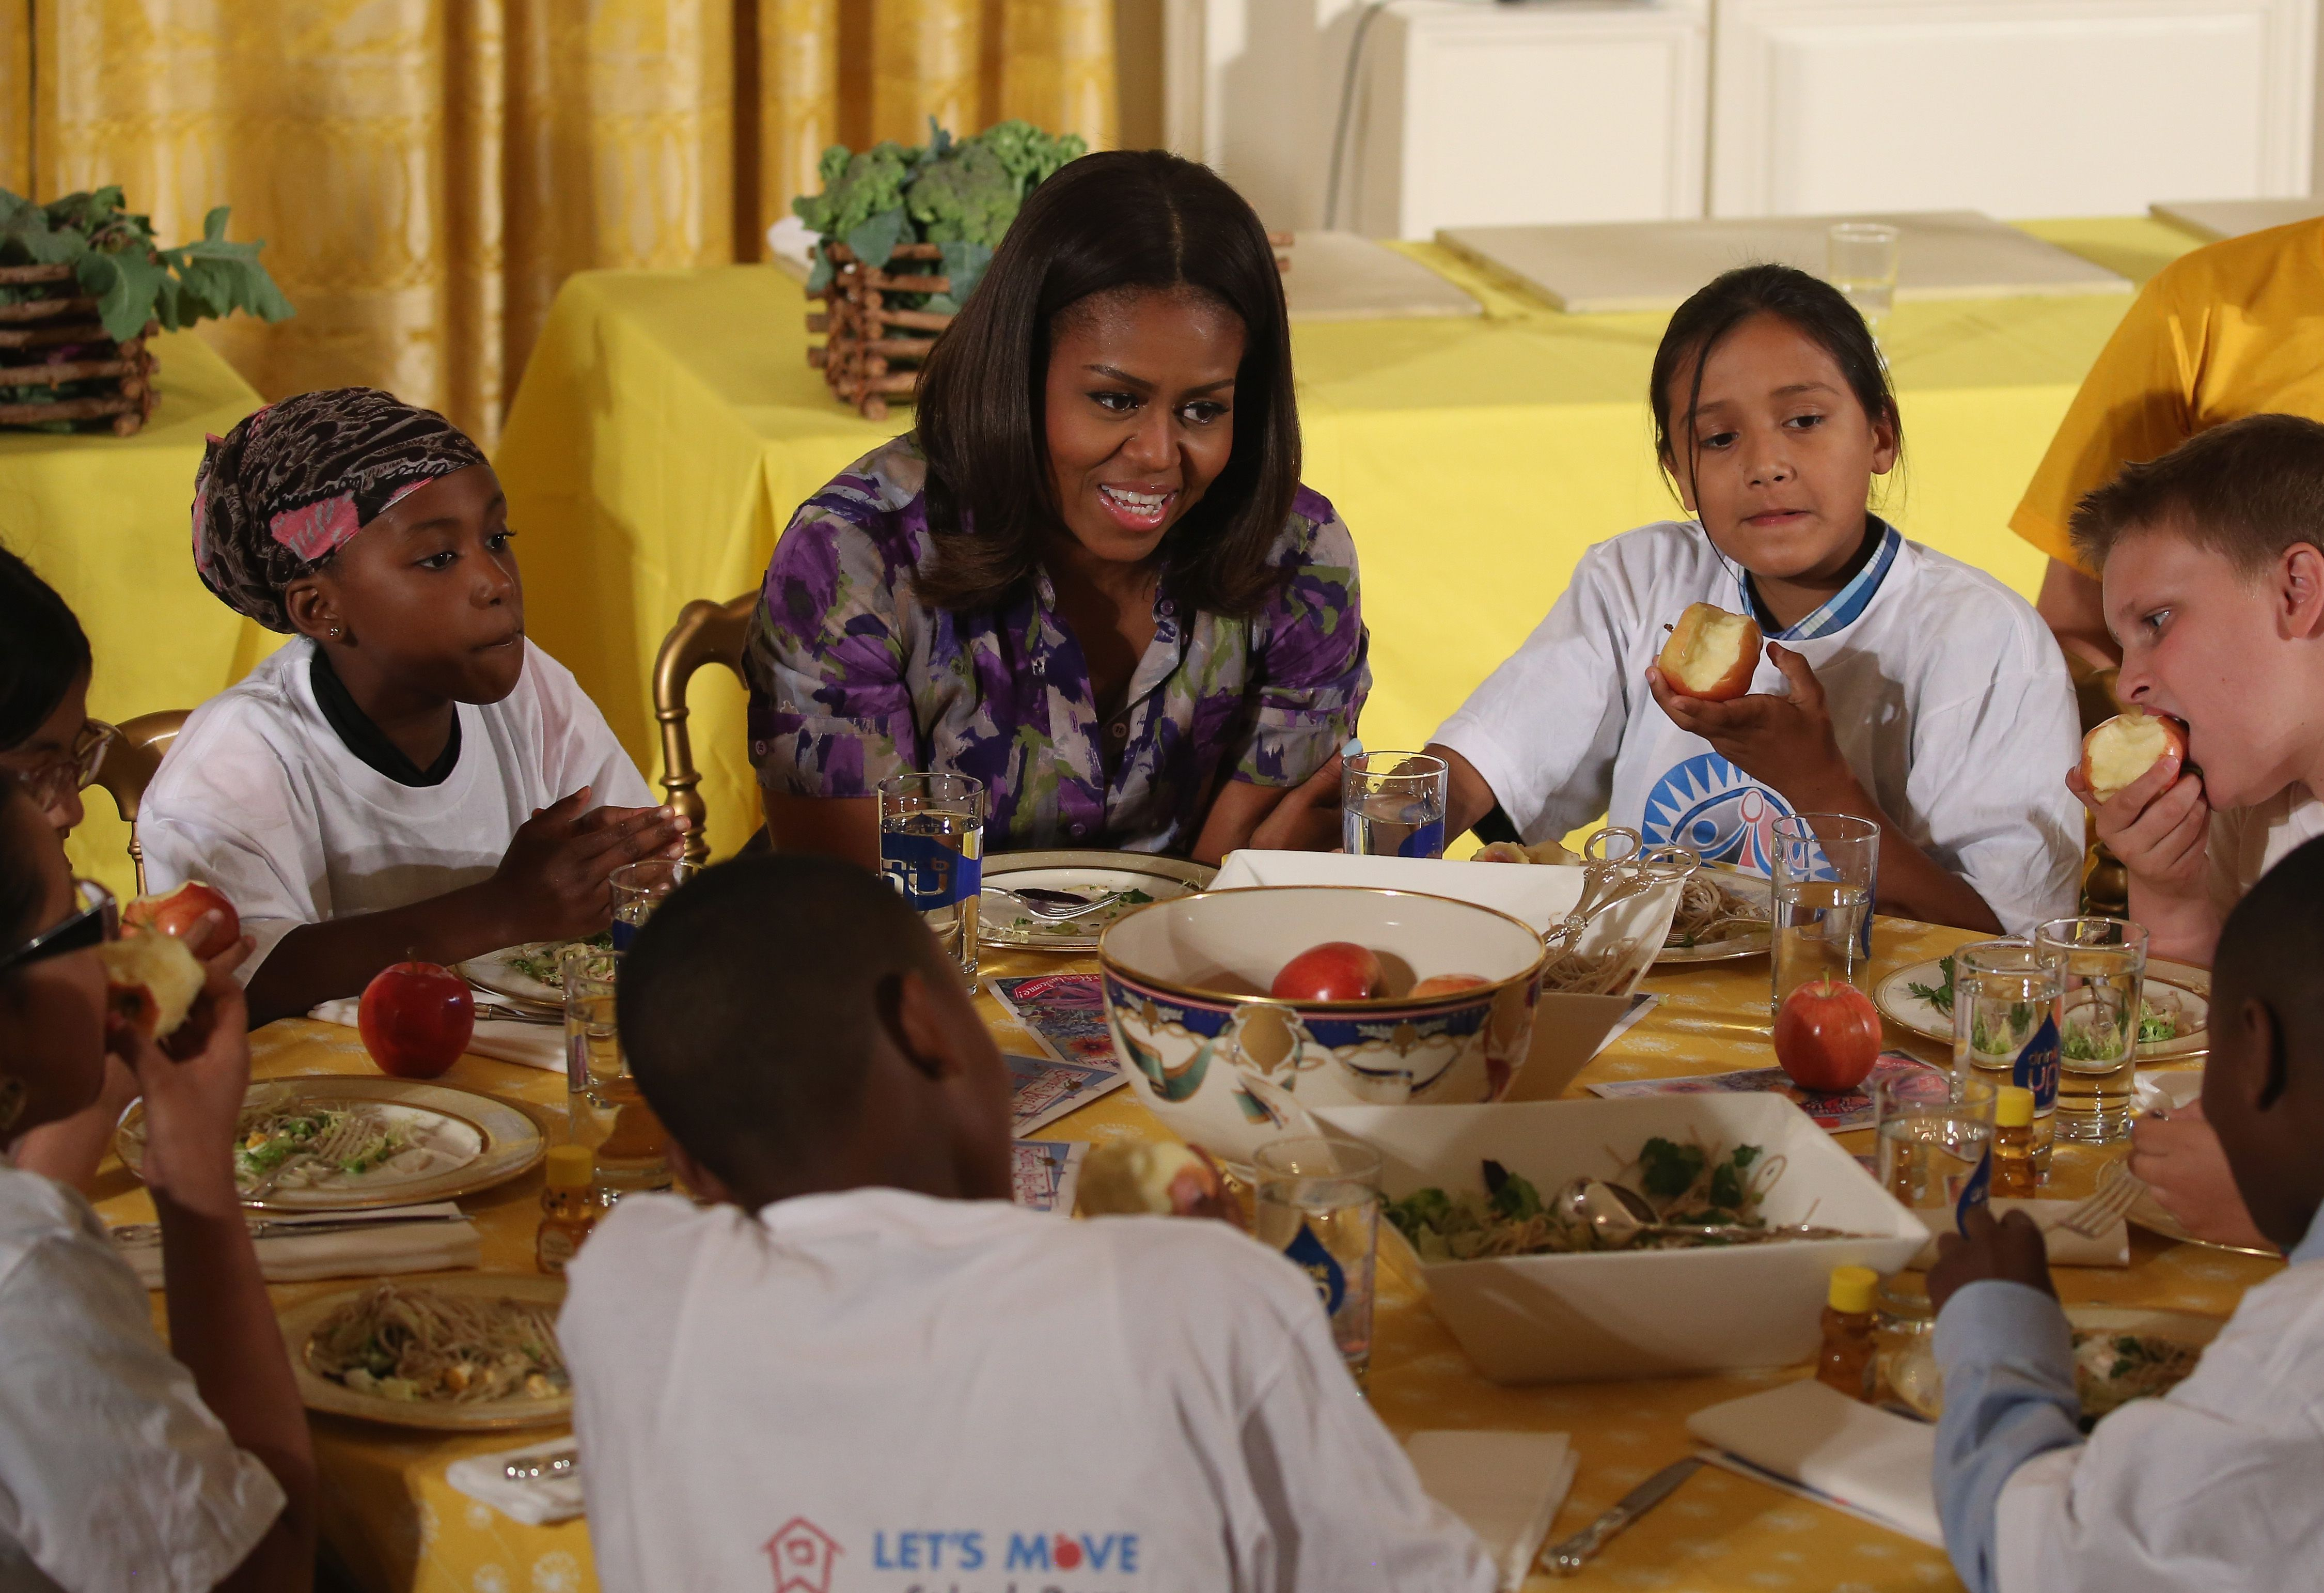 Child Health And Obesity Quotes From Michelle Obama